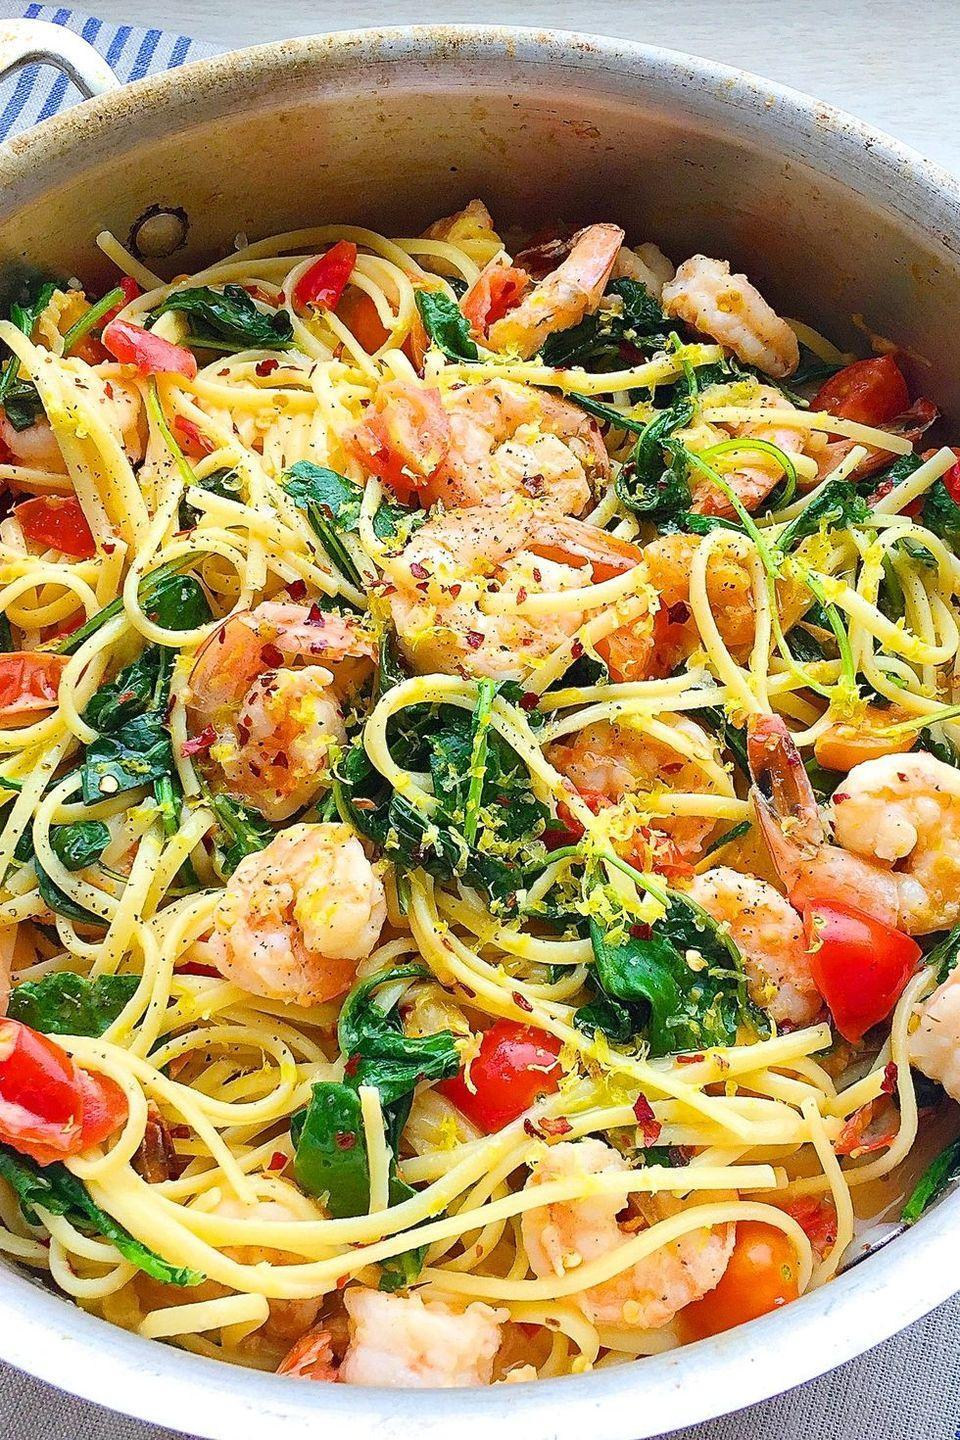 """<p>Don't give up pasta, just add some greens and skip the heavy sauces.<br><br>Get the recipe from <a href=""""https://www.delish.com/cooking/recipe-ideas/recipes/a43809/creamy-shrimp-linguine-tomatoes-kale-lemon-zest-recipe/"""" rel=""""nofollow noopener"""" target=""""_blank"""" data-ylk=""""slk:Delish"""" class=""""link rapid-noclick-resp"""">Delish</a>.</p>"""